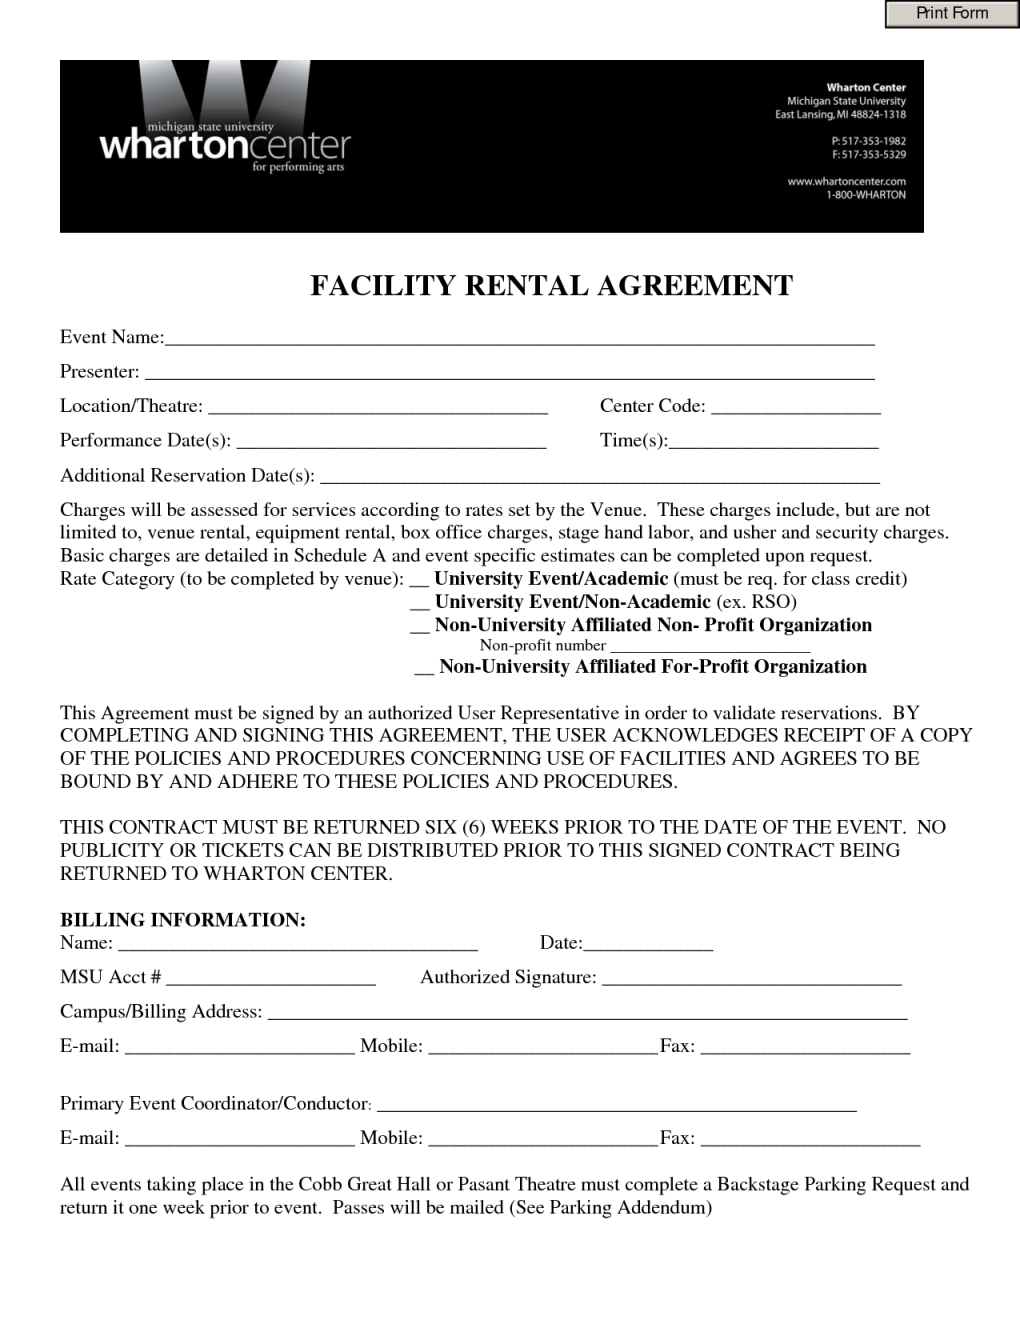 Contract Rental Agreement Template Facility Hire Agreement Template Lobo Black